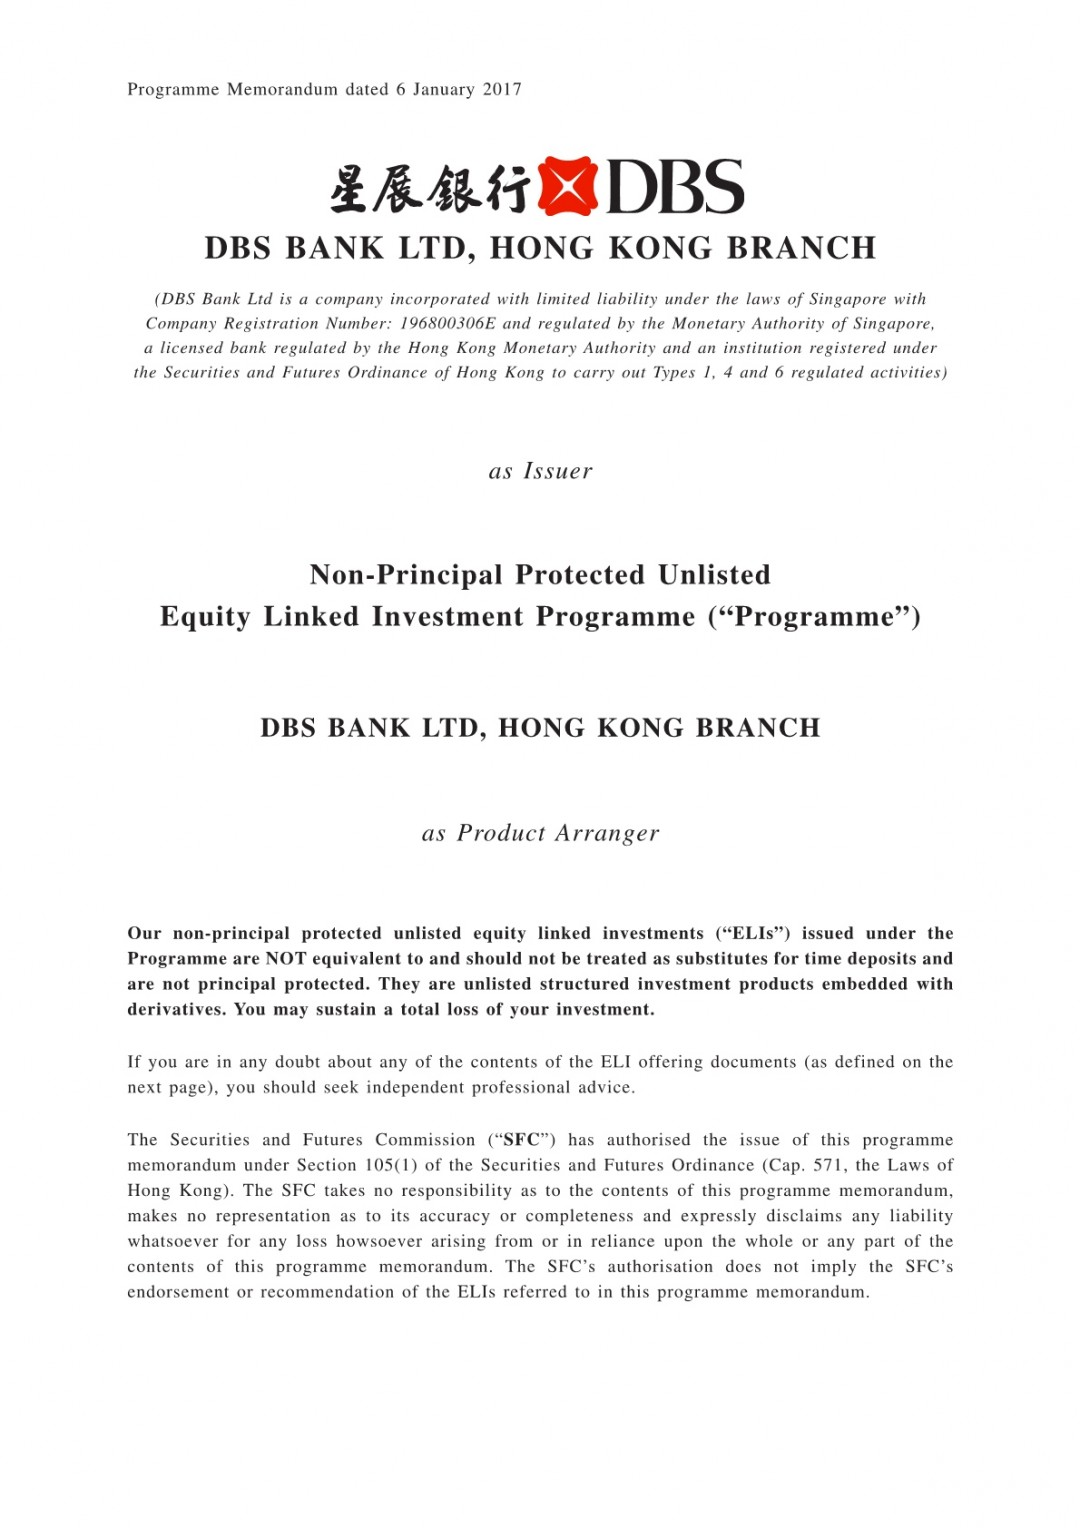 DBS Bank Ltd, Hong Kong Branch – Programme Memorandum